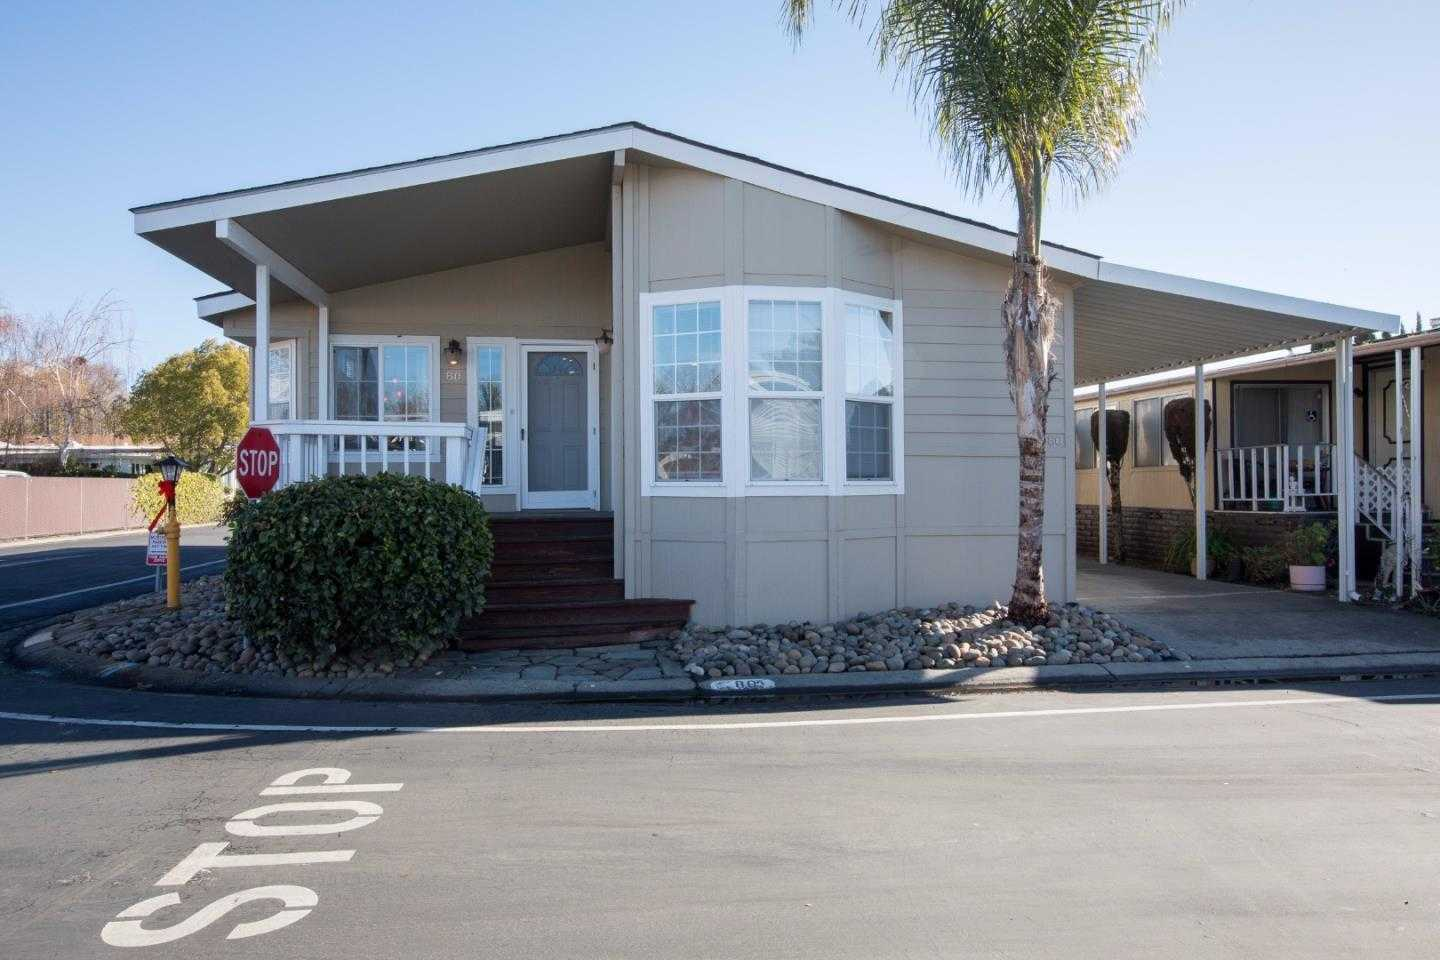 $255,000 - 3Br/2Ba -  for Sale in Sunnyvale